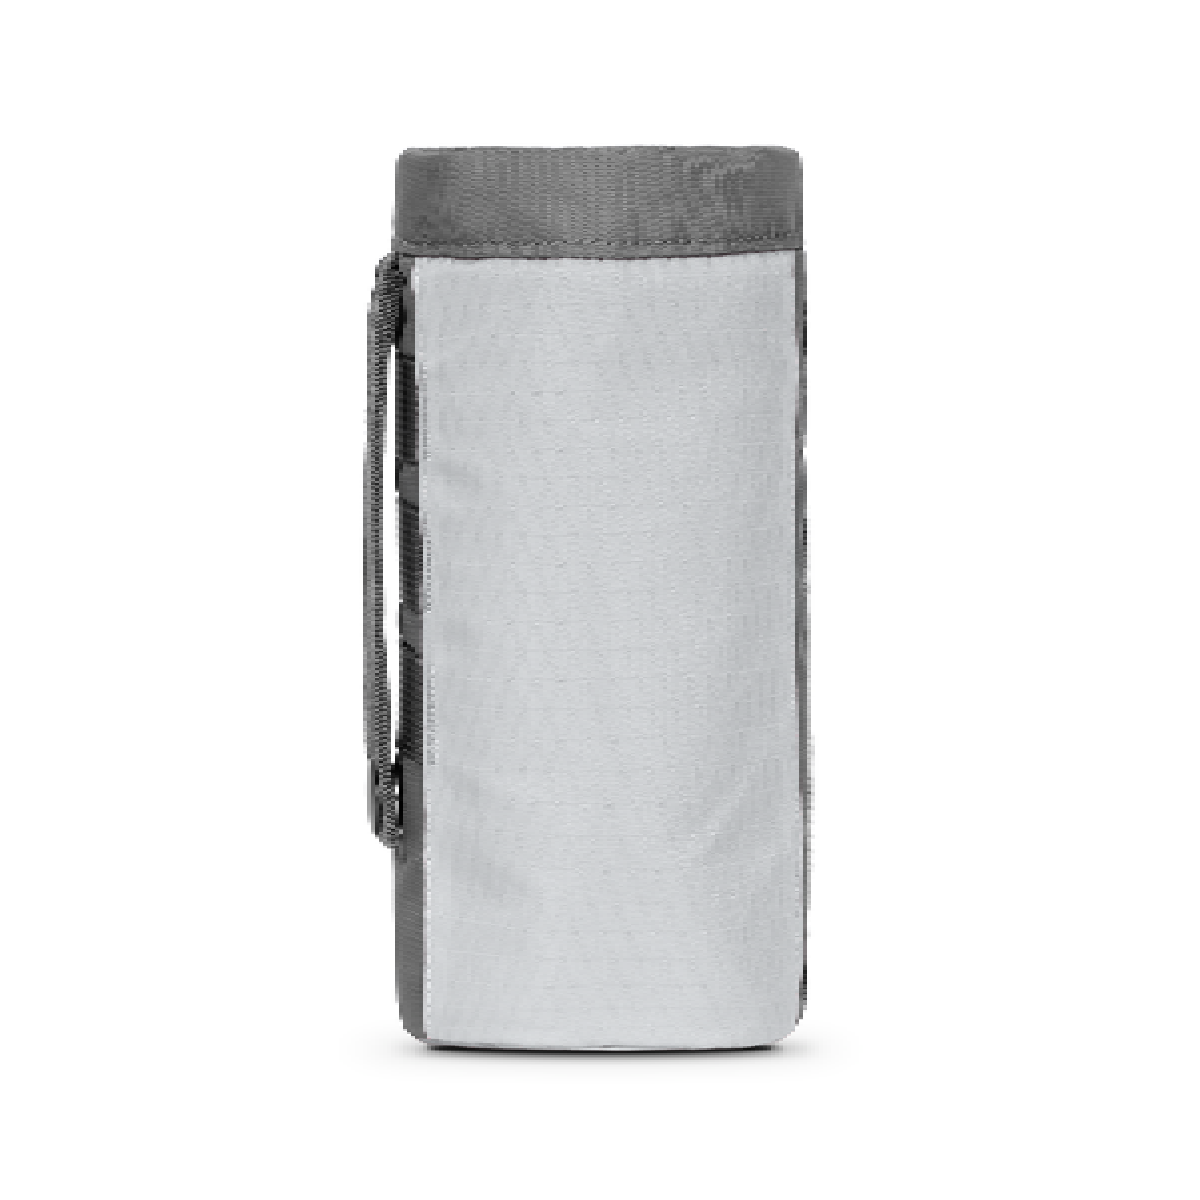 S.02 Adventure Insulated Bottle Holder